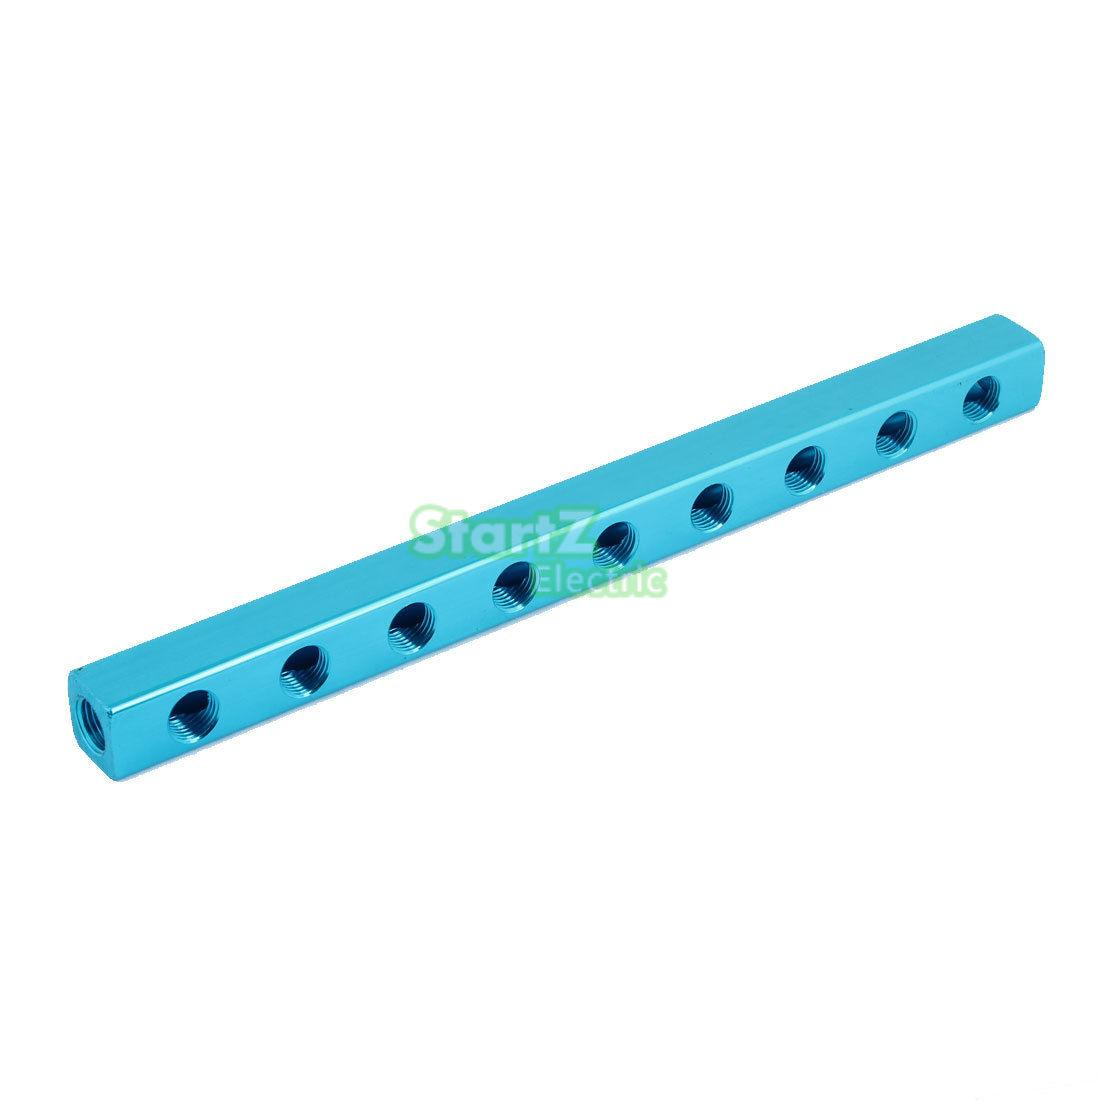 1/4 PT Thread 9 Way Quick Connector Air Hose Manifold Block Splitter Blue air compressor 1 2bsp 2 way hose pipe inline manifold block splitter teal blue